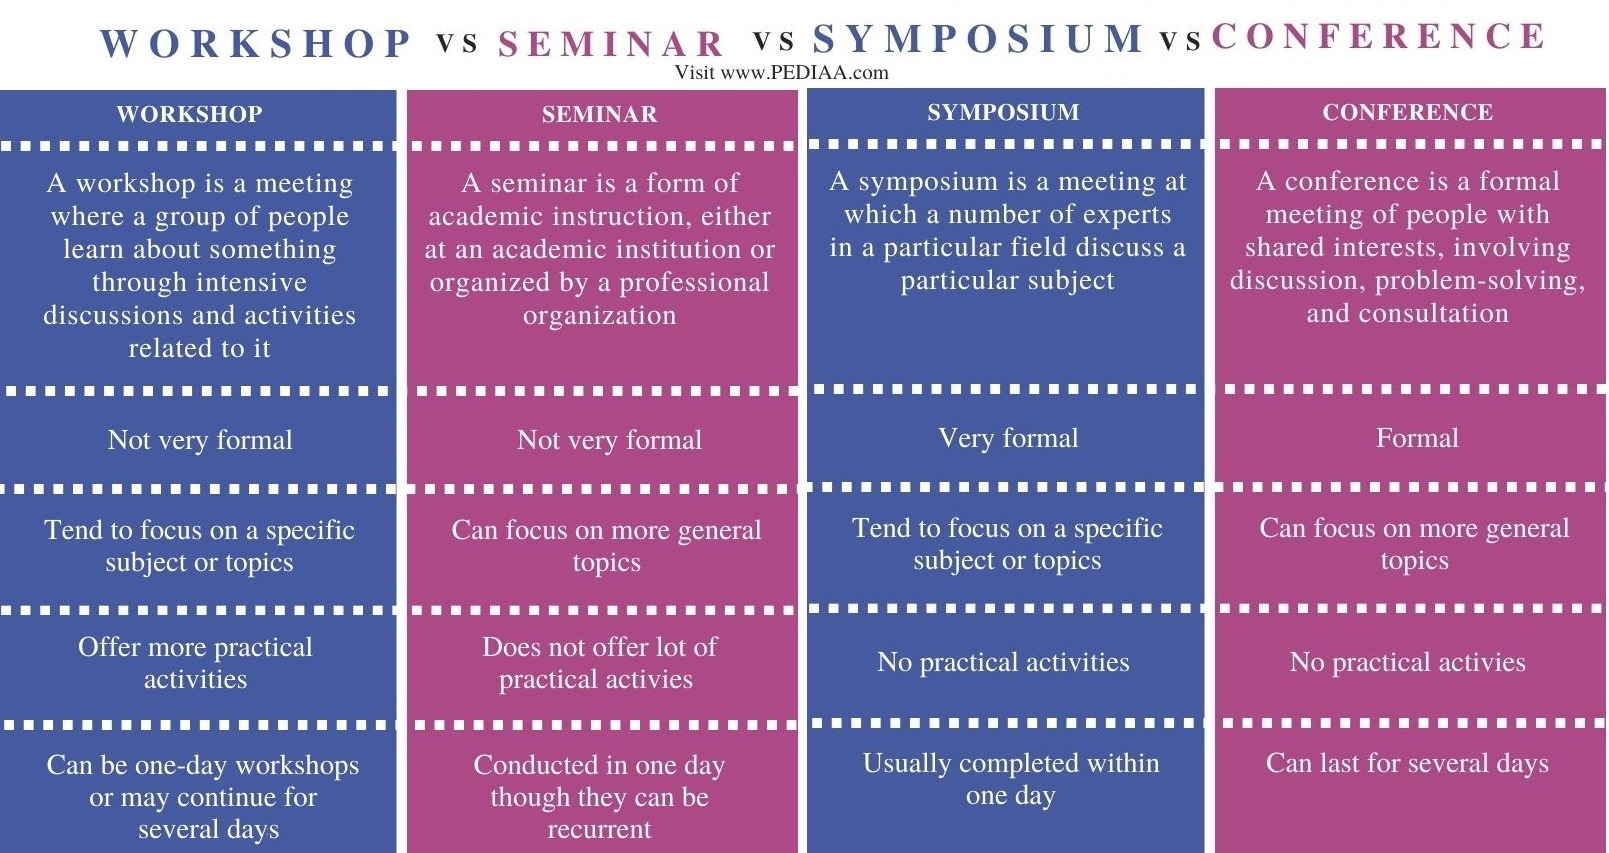 Difference Between Workshop Seminar Symposium and Conference - Comparison Summary